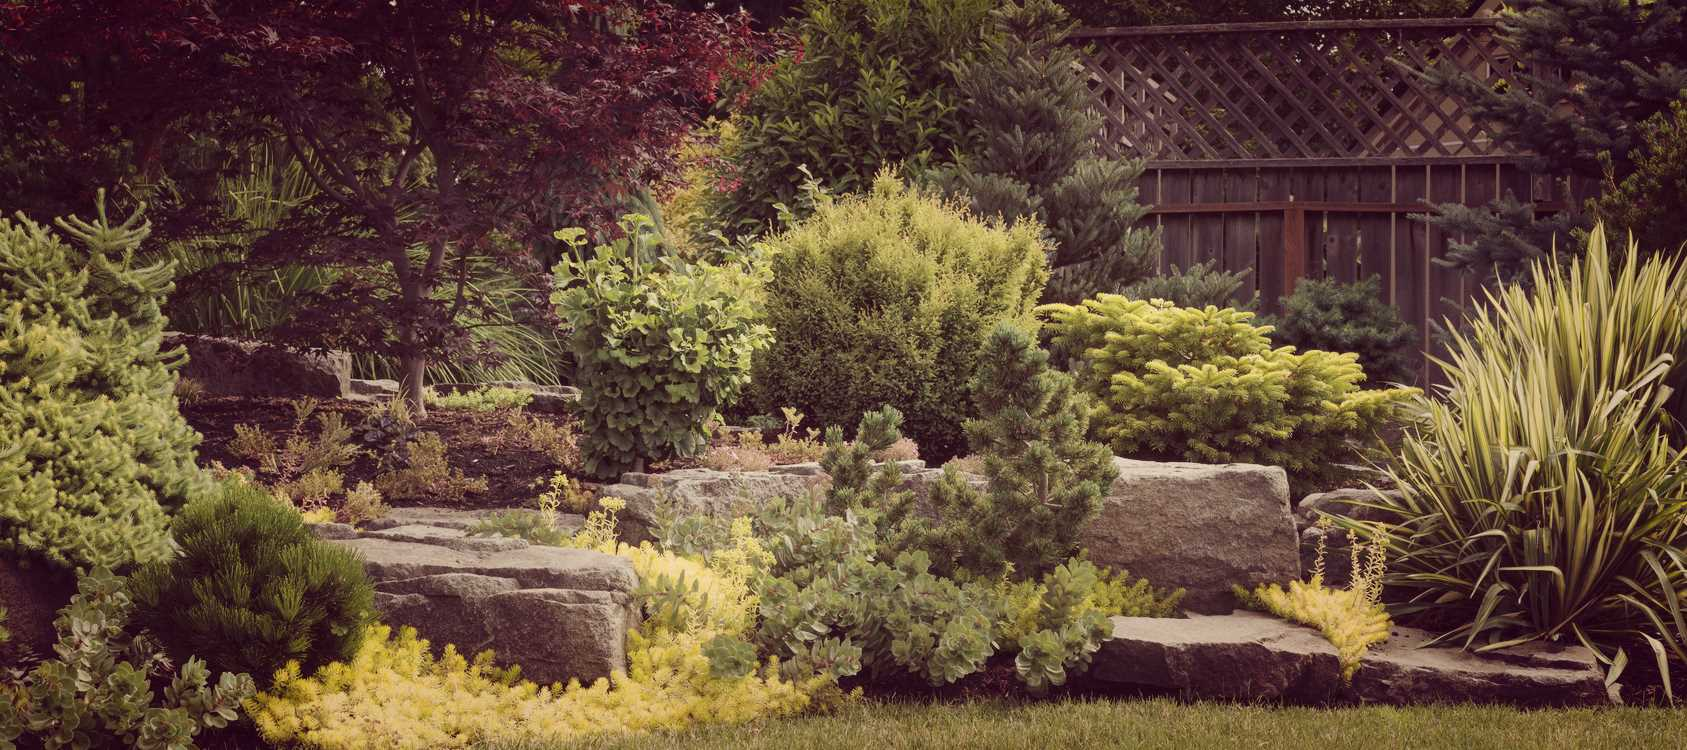 Why hire a professional landscape design company for Professional landscape design